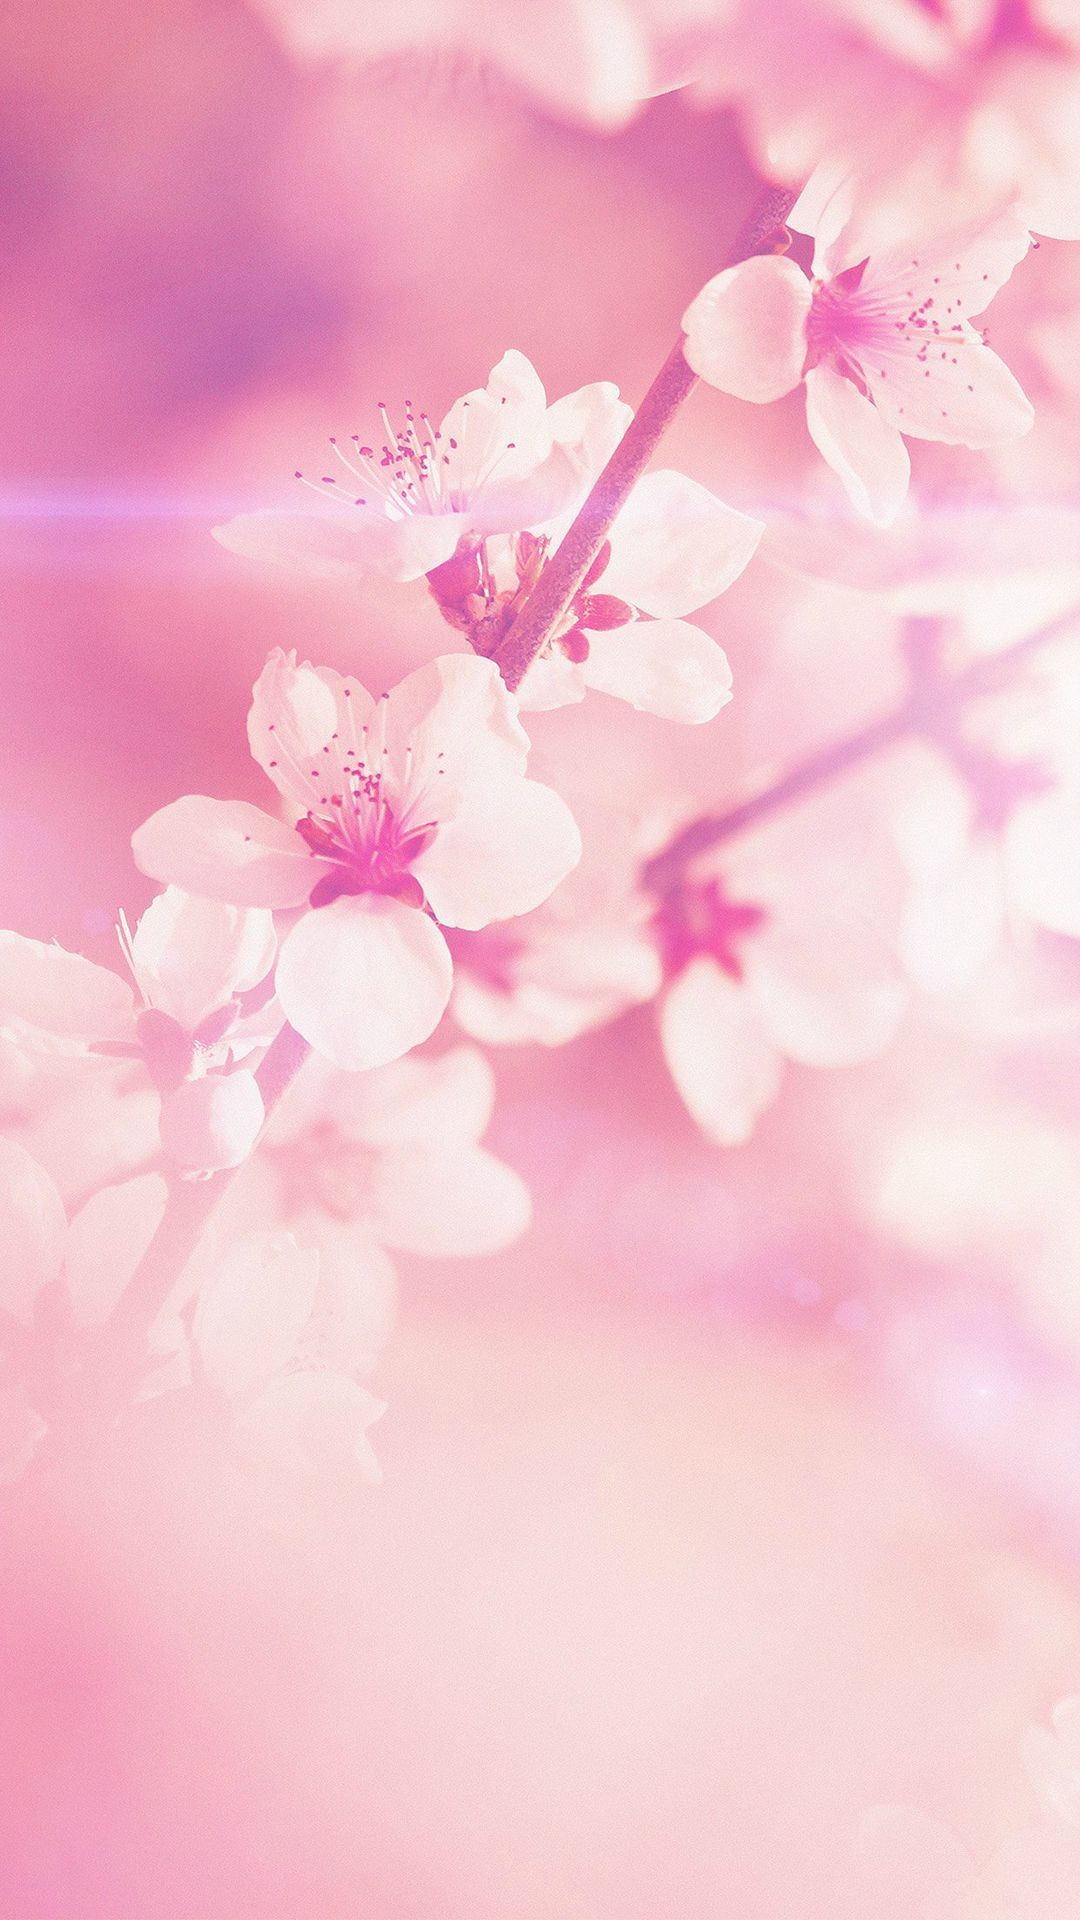 Pretty Flower Background 52 Images